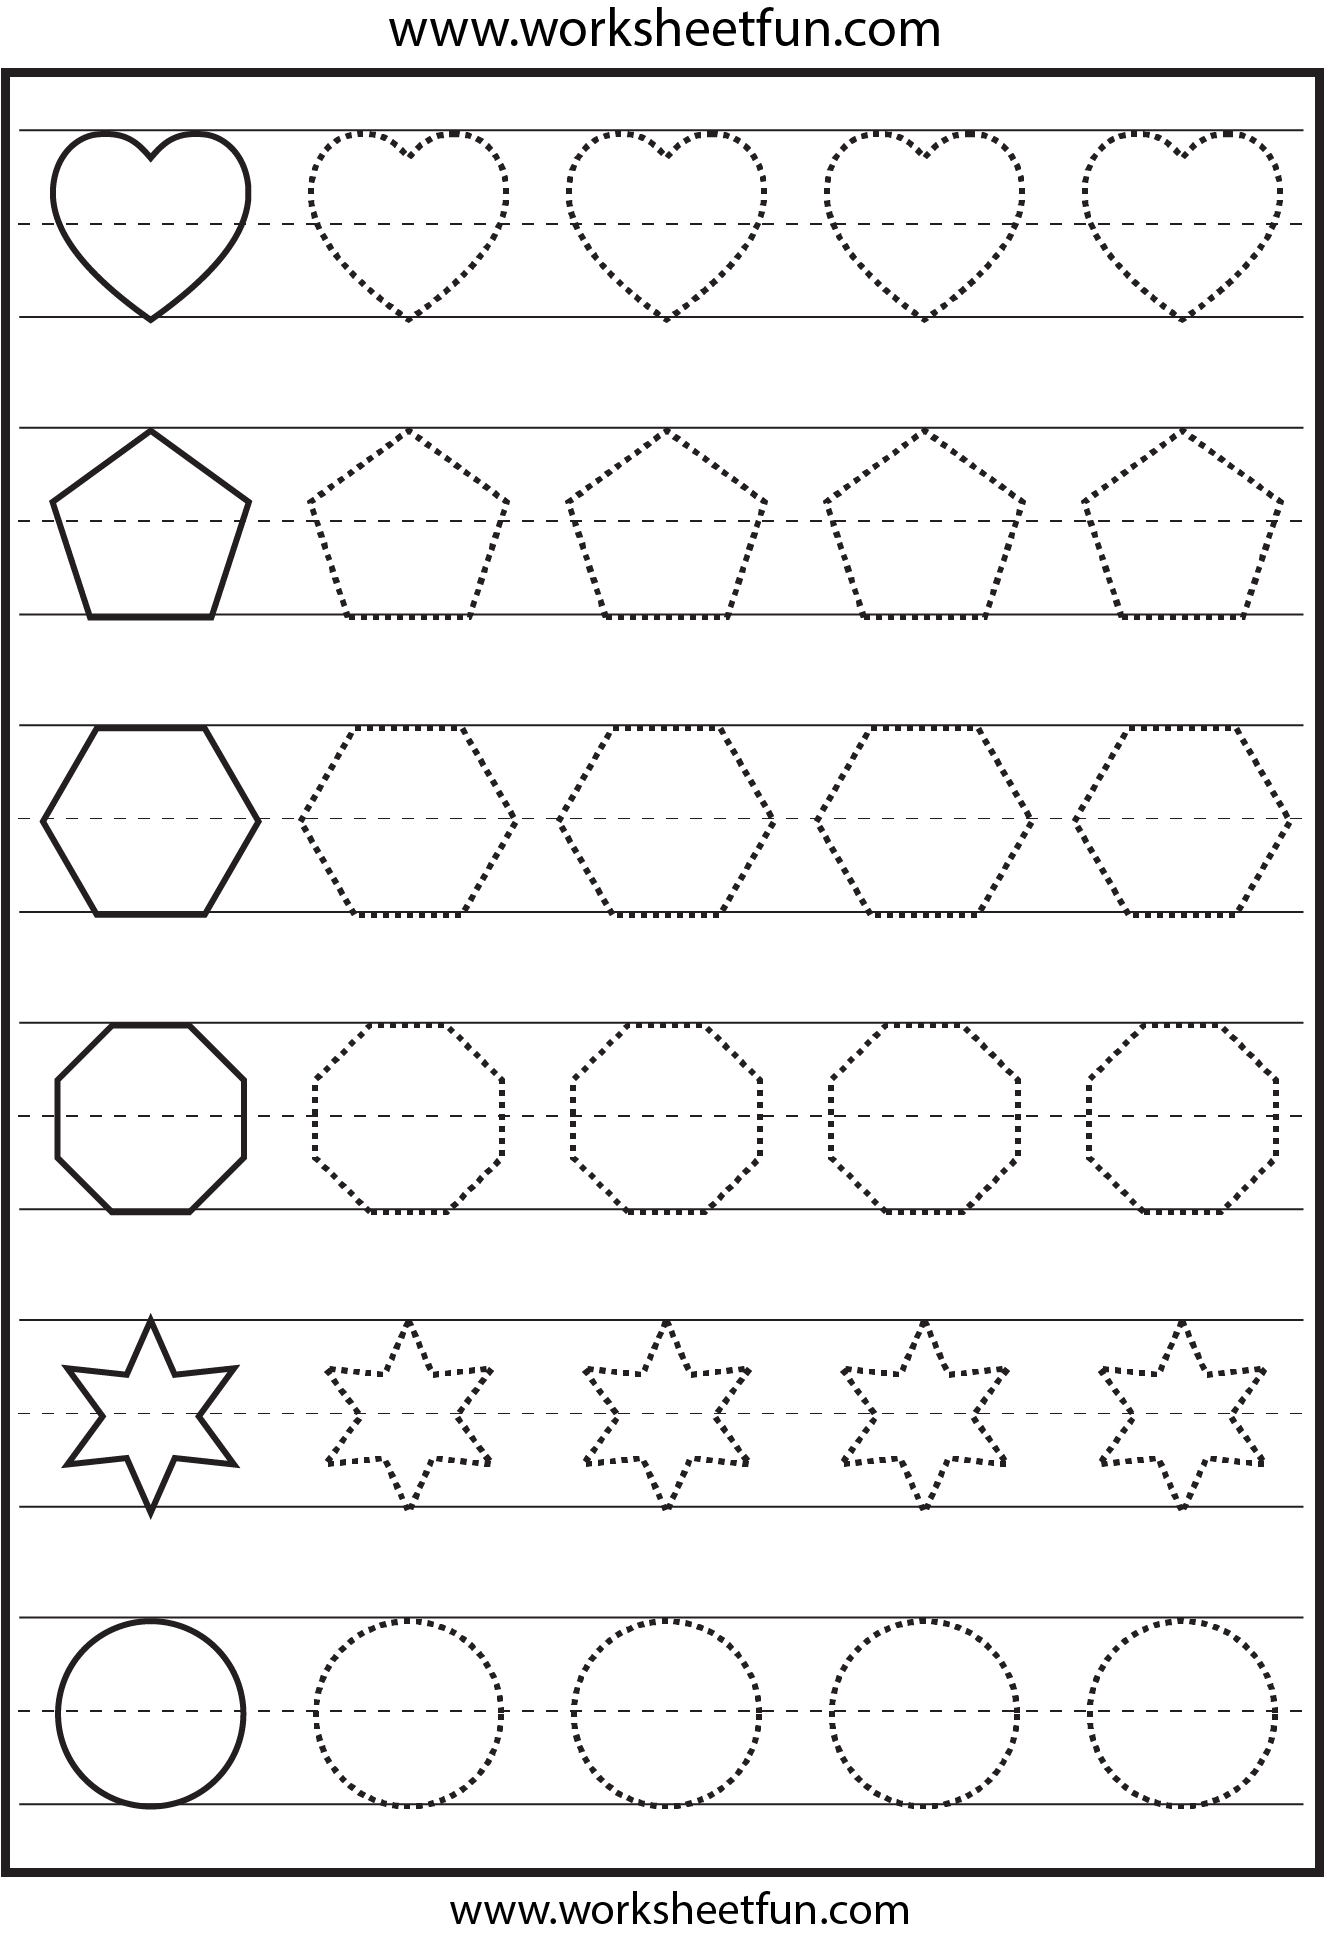 Worksheets Free Traceable Worksheets traceable worksheets versaldobip 1000 images about tracing on pinterest